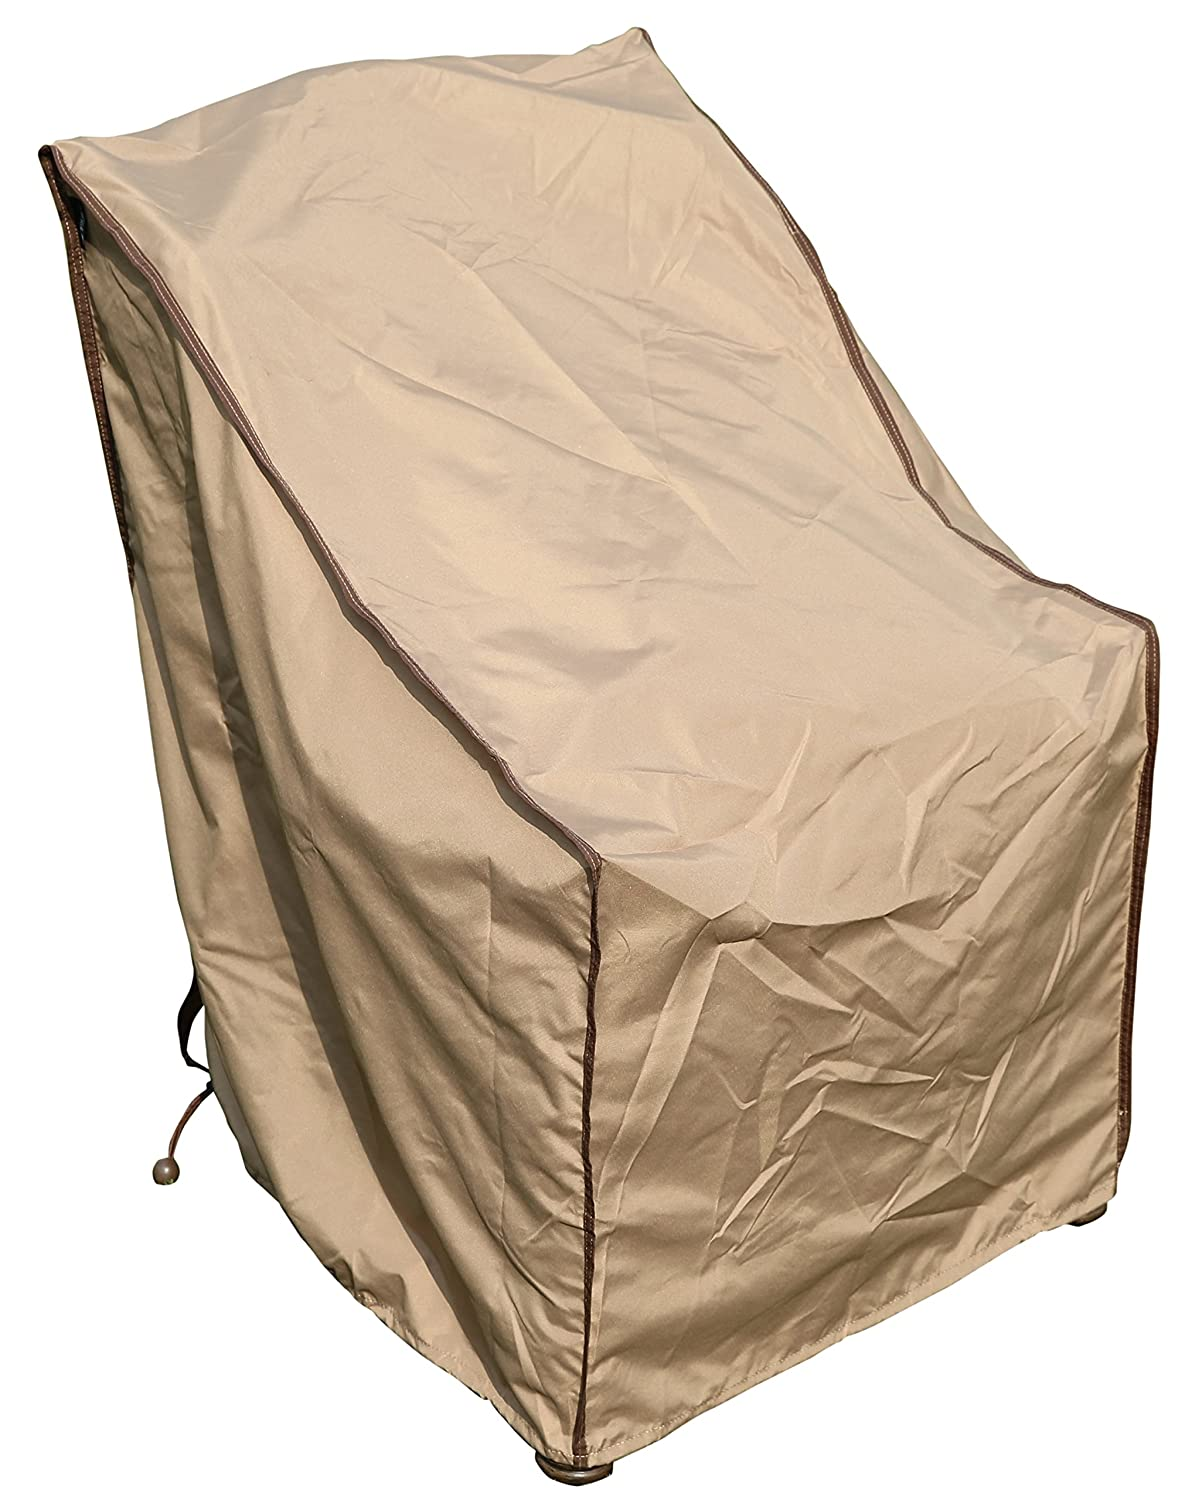 SORARA Single Porch Leisure Chair Cover Outdoor Patio Furniture Cover, Water Resistant, 28.7 L x 25 W x 34 H, Brown